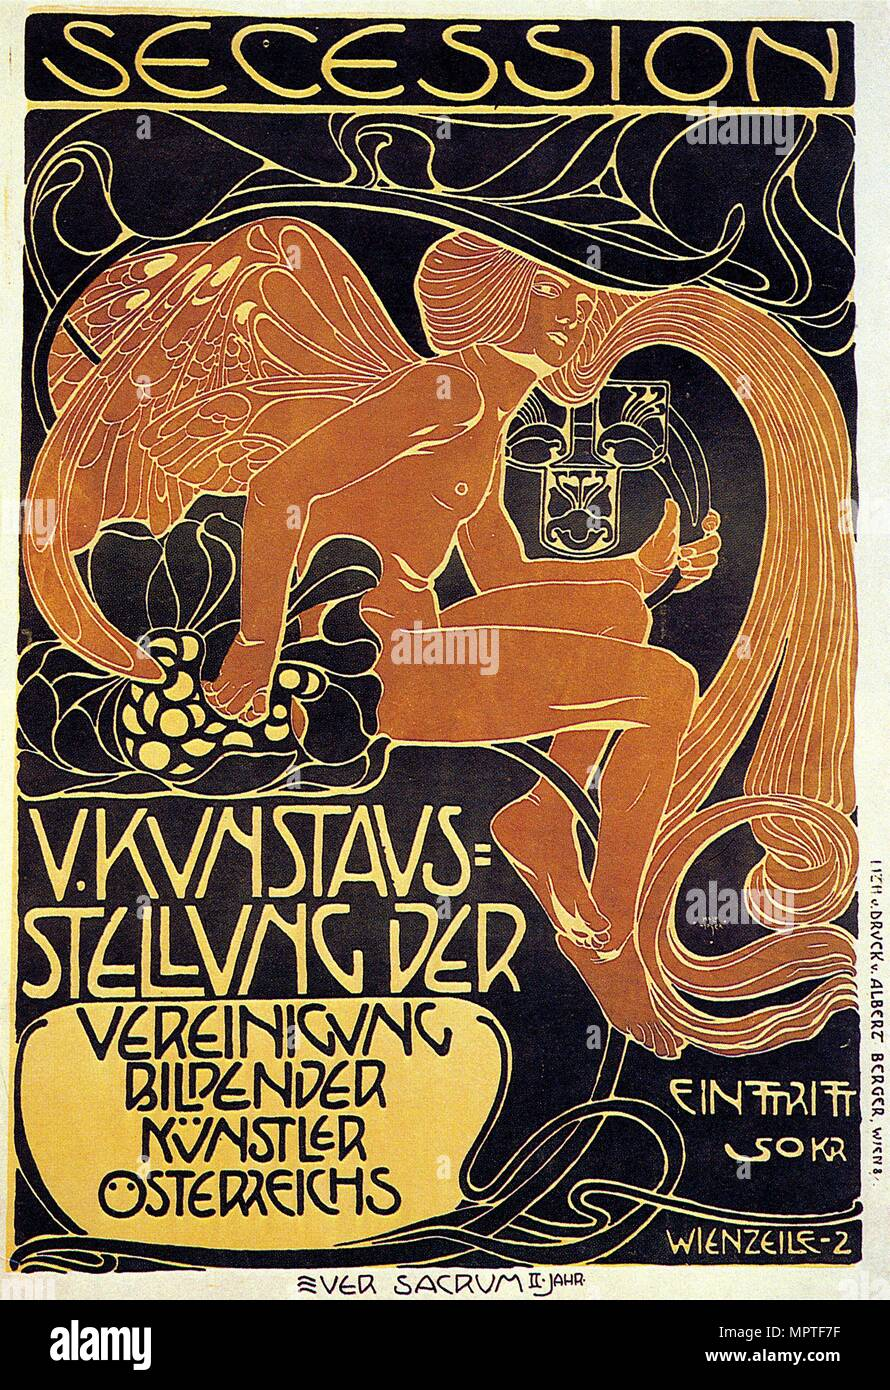 Vienna Secession, Fifth Exhibition poster, 1899. - Stock Image